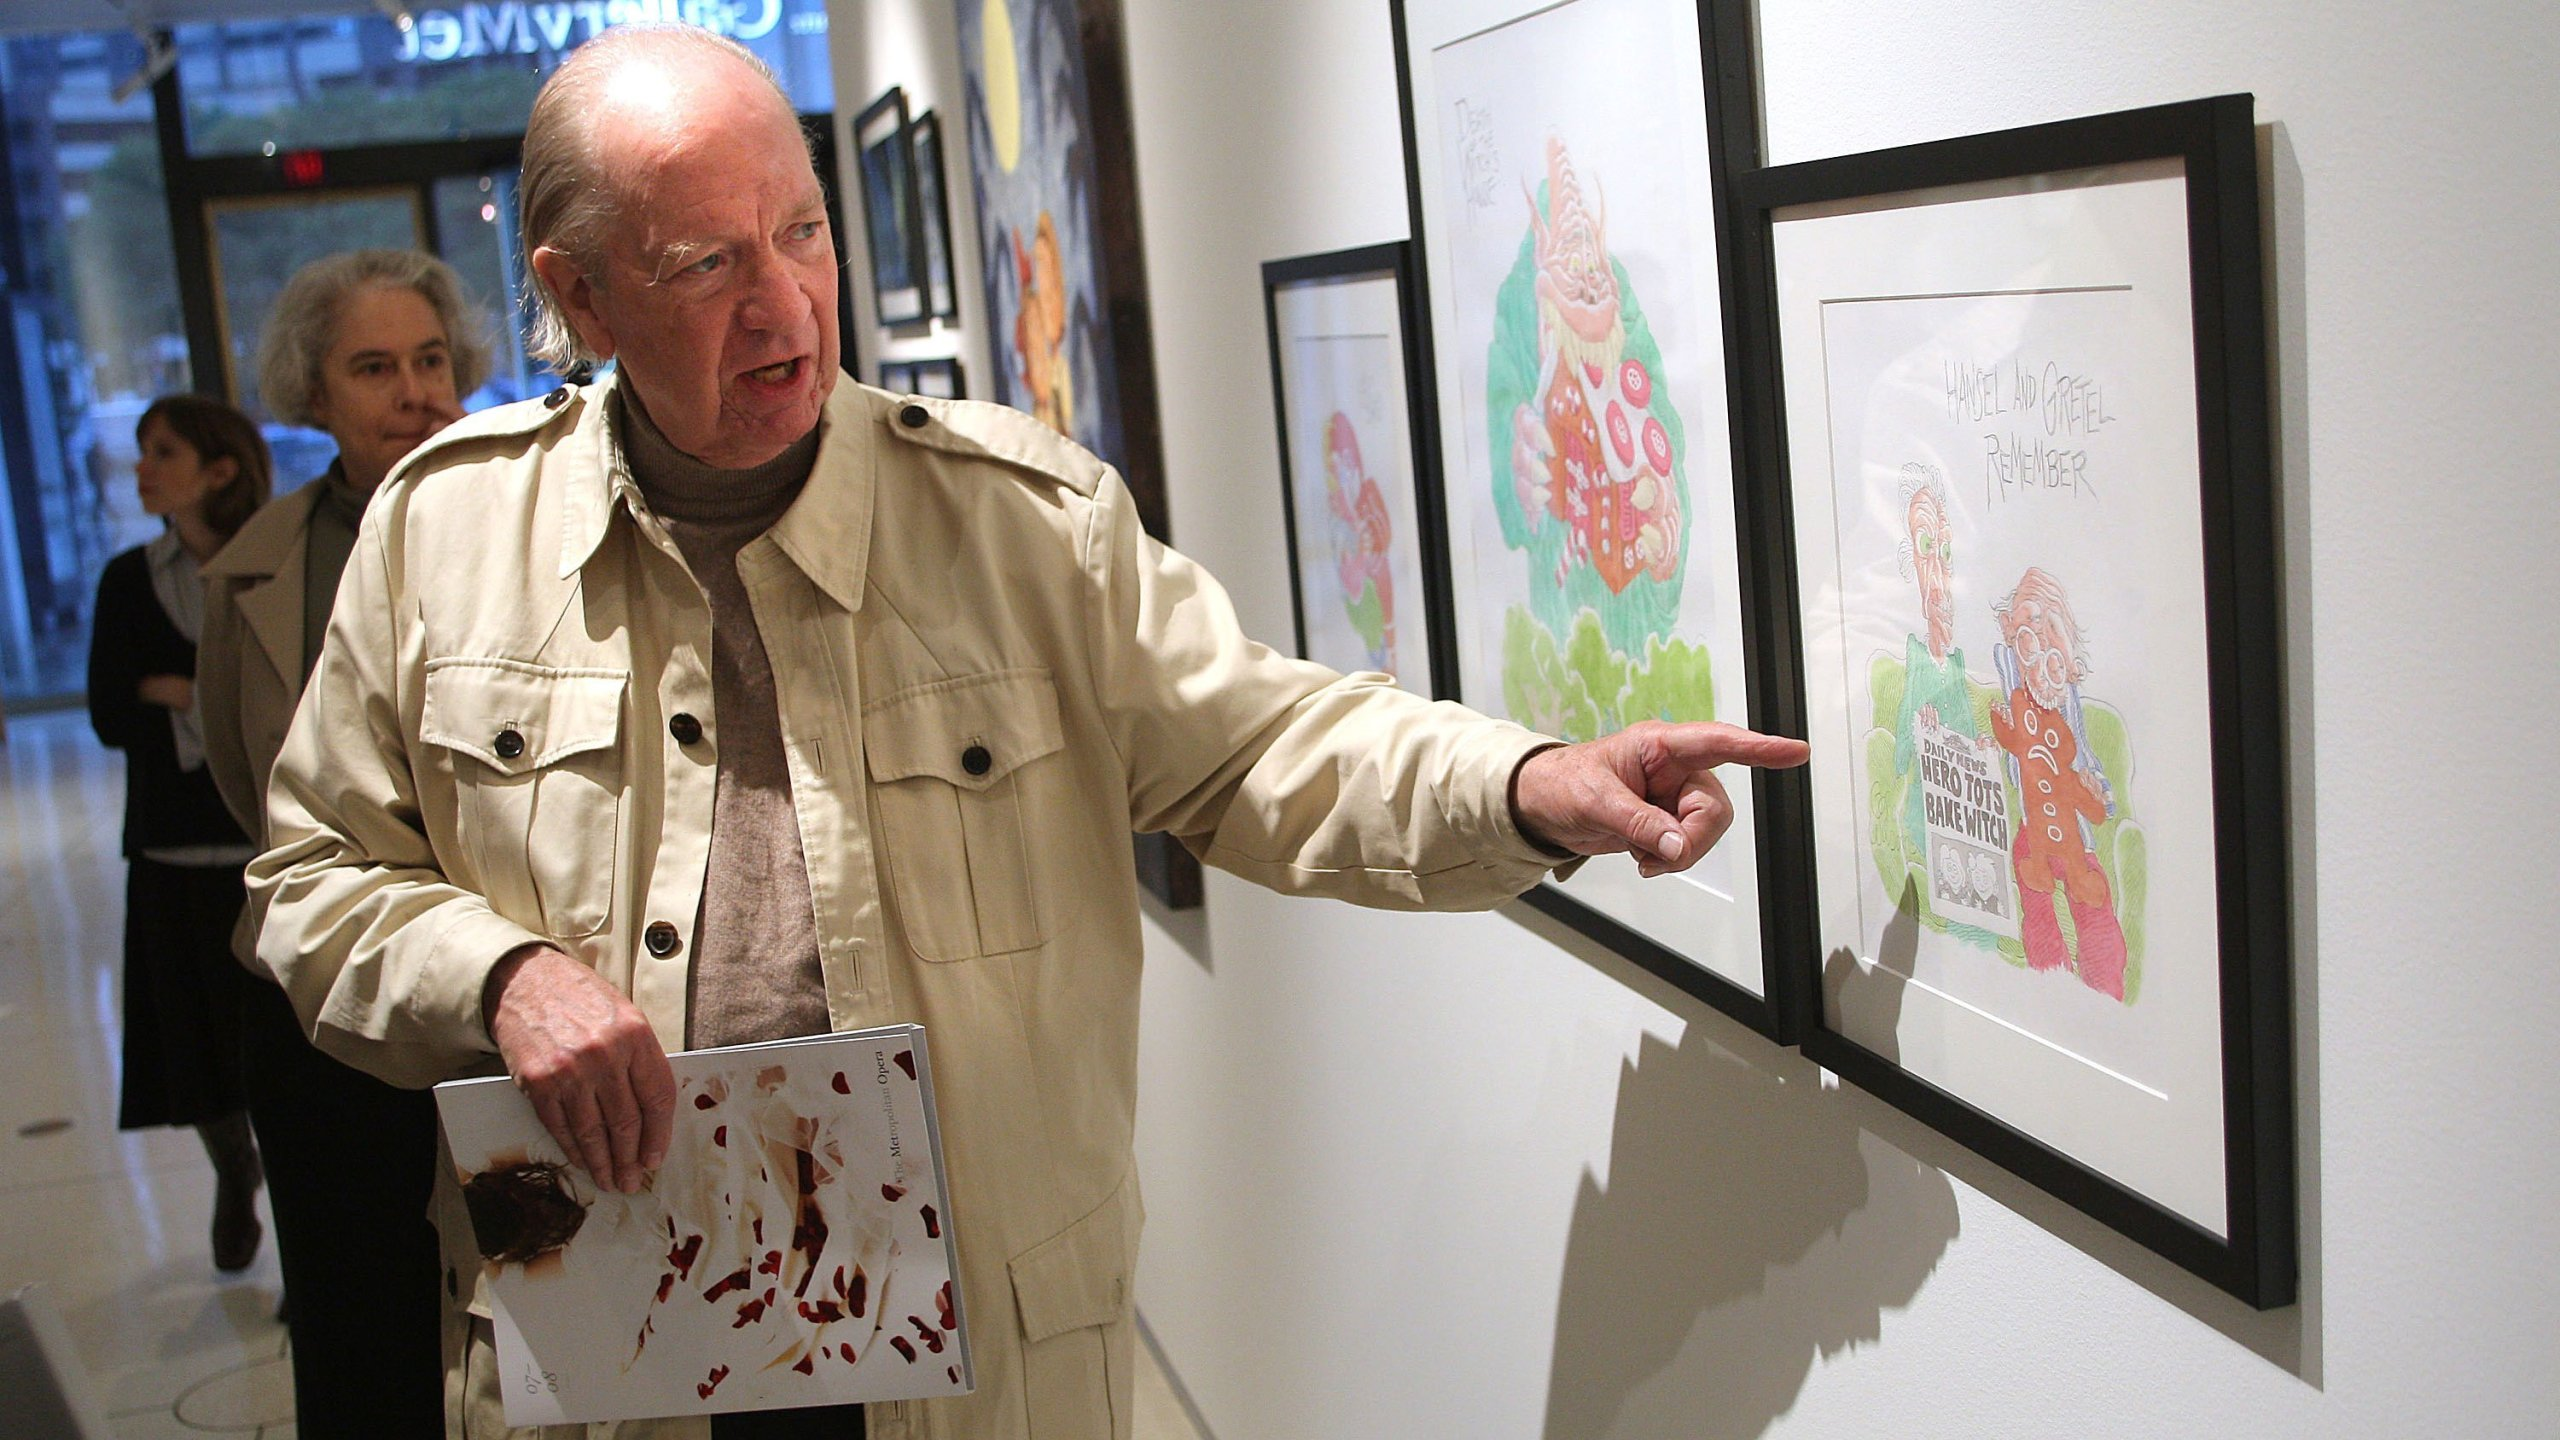 Gahan Wilson discusses his piece on display at an exhibit in New York in 2007. (Credit: Scott Gries/Getty Images)